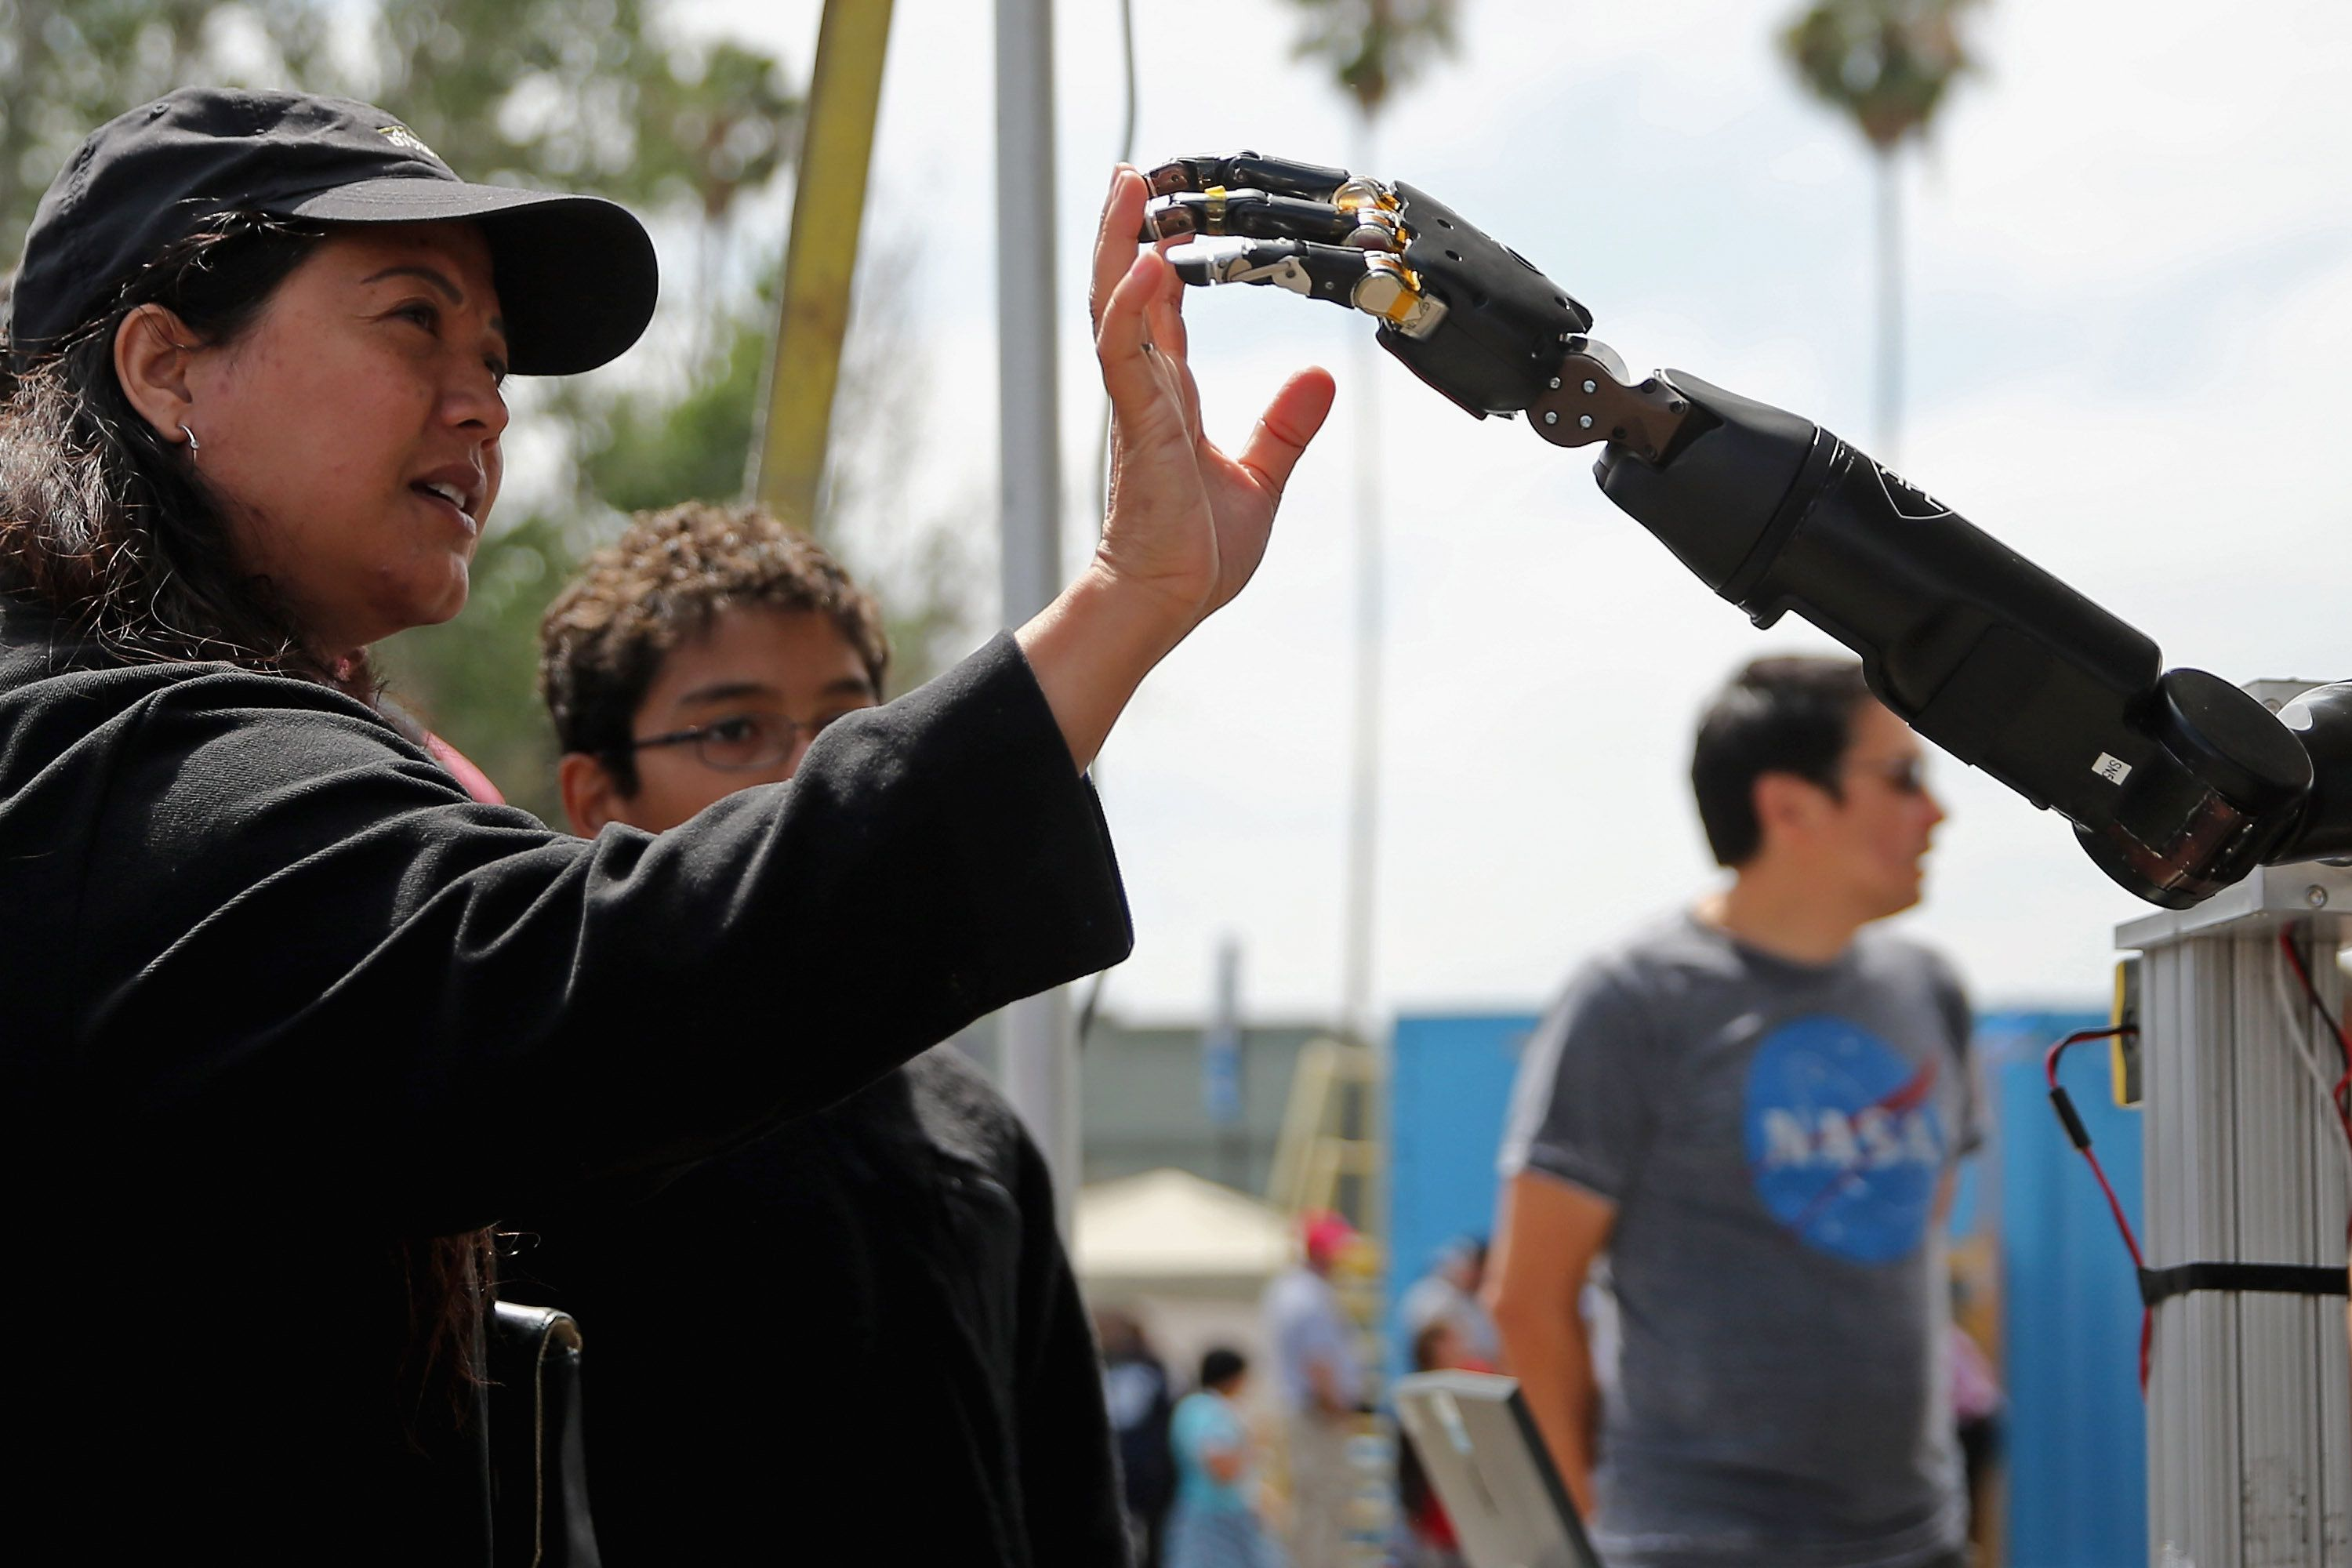 POMONA, CA - JUNE 06:  A woman reaches to touch a robotic arm developed by the Johns Hopkins University Applied Physics Laboratory is on display at the Defense Advanced Research Projects Agency (DARPA) Robotics Challenge Expo at the Fairplex June 6, 2015 in Pomona, California. Organized by DARPA, the Pentagon's science research group, 24 teams from aorund the world are competing for $3.5 million in prize money that will be awarded to the robots that best respond to natural and man-made disasters.  (Photo by Chip Somodevilla/Getty Images)